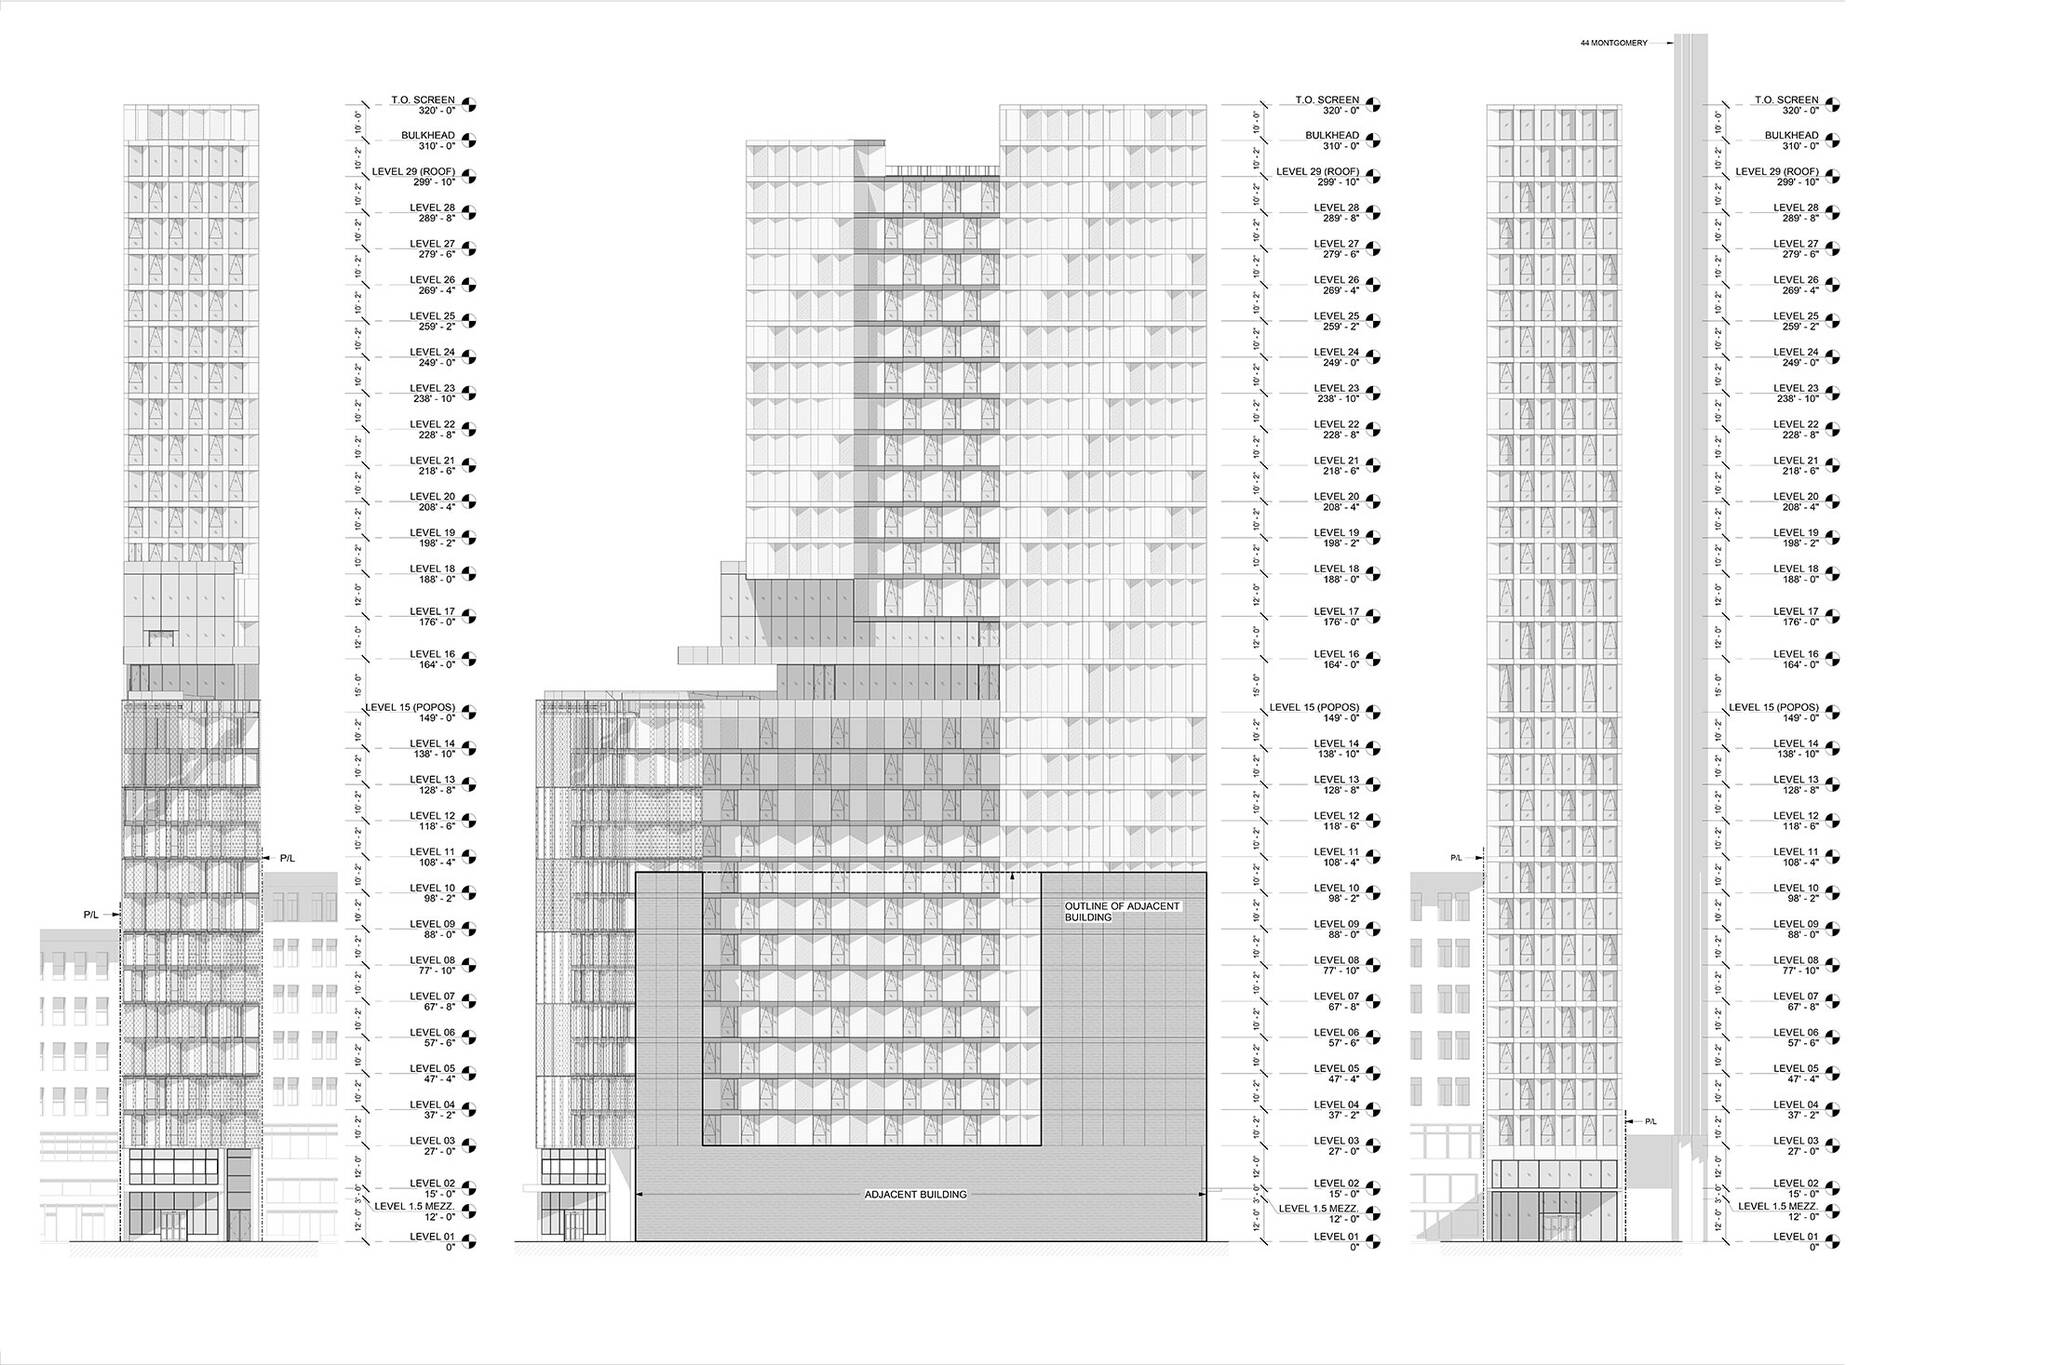 Levels diagram of the San Francisco modular project located at 570 Market Street on the Financial District of San Francisco, California designed by the architecture studio Danny Forster & Architecture